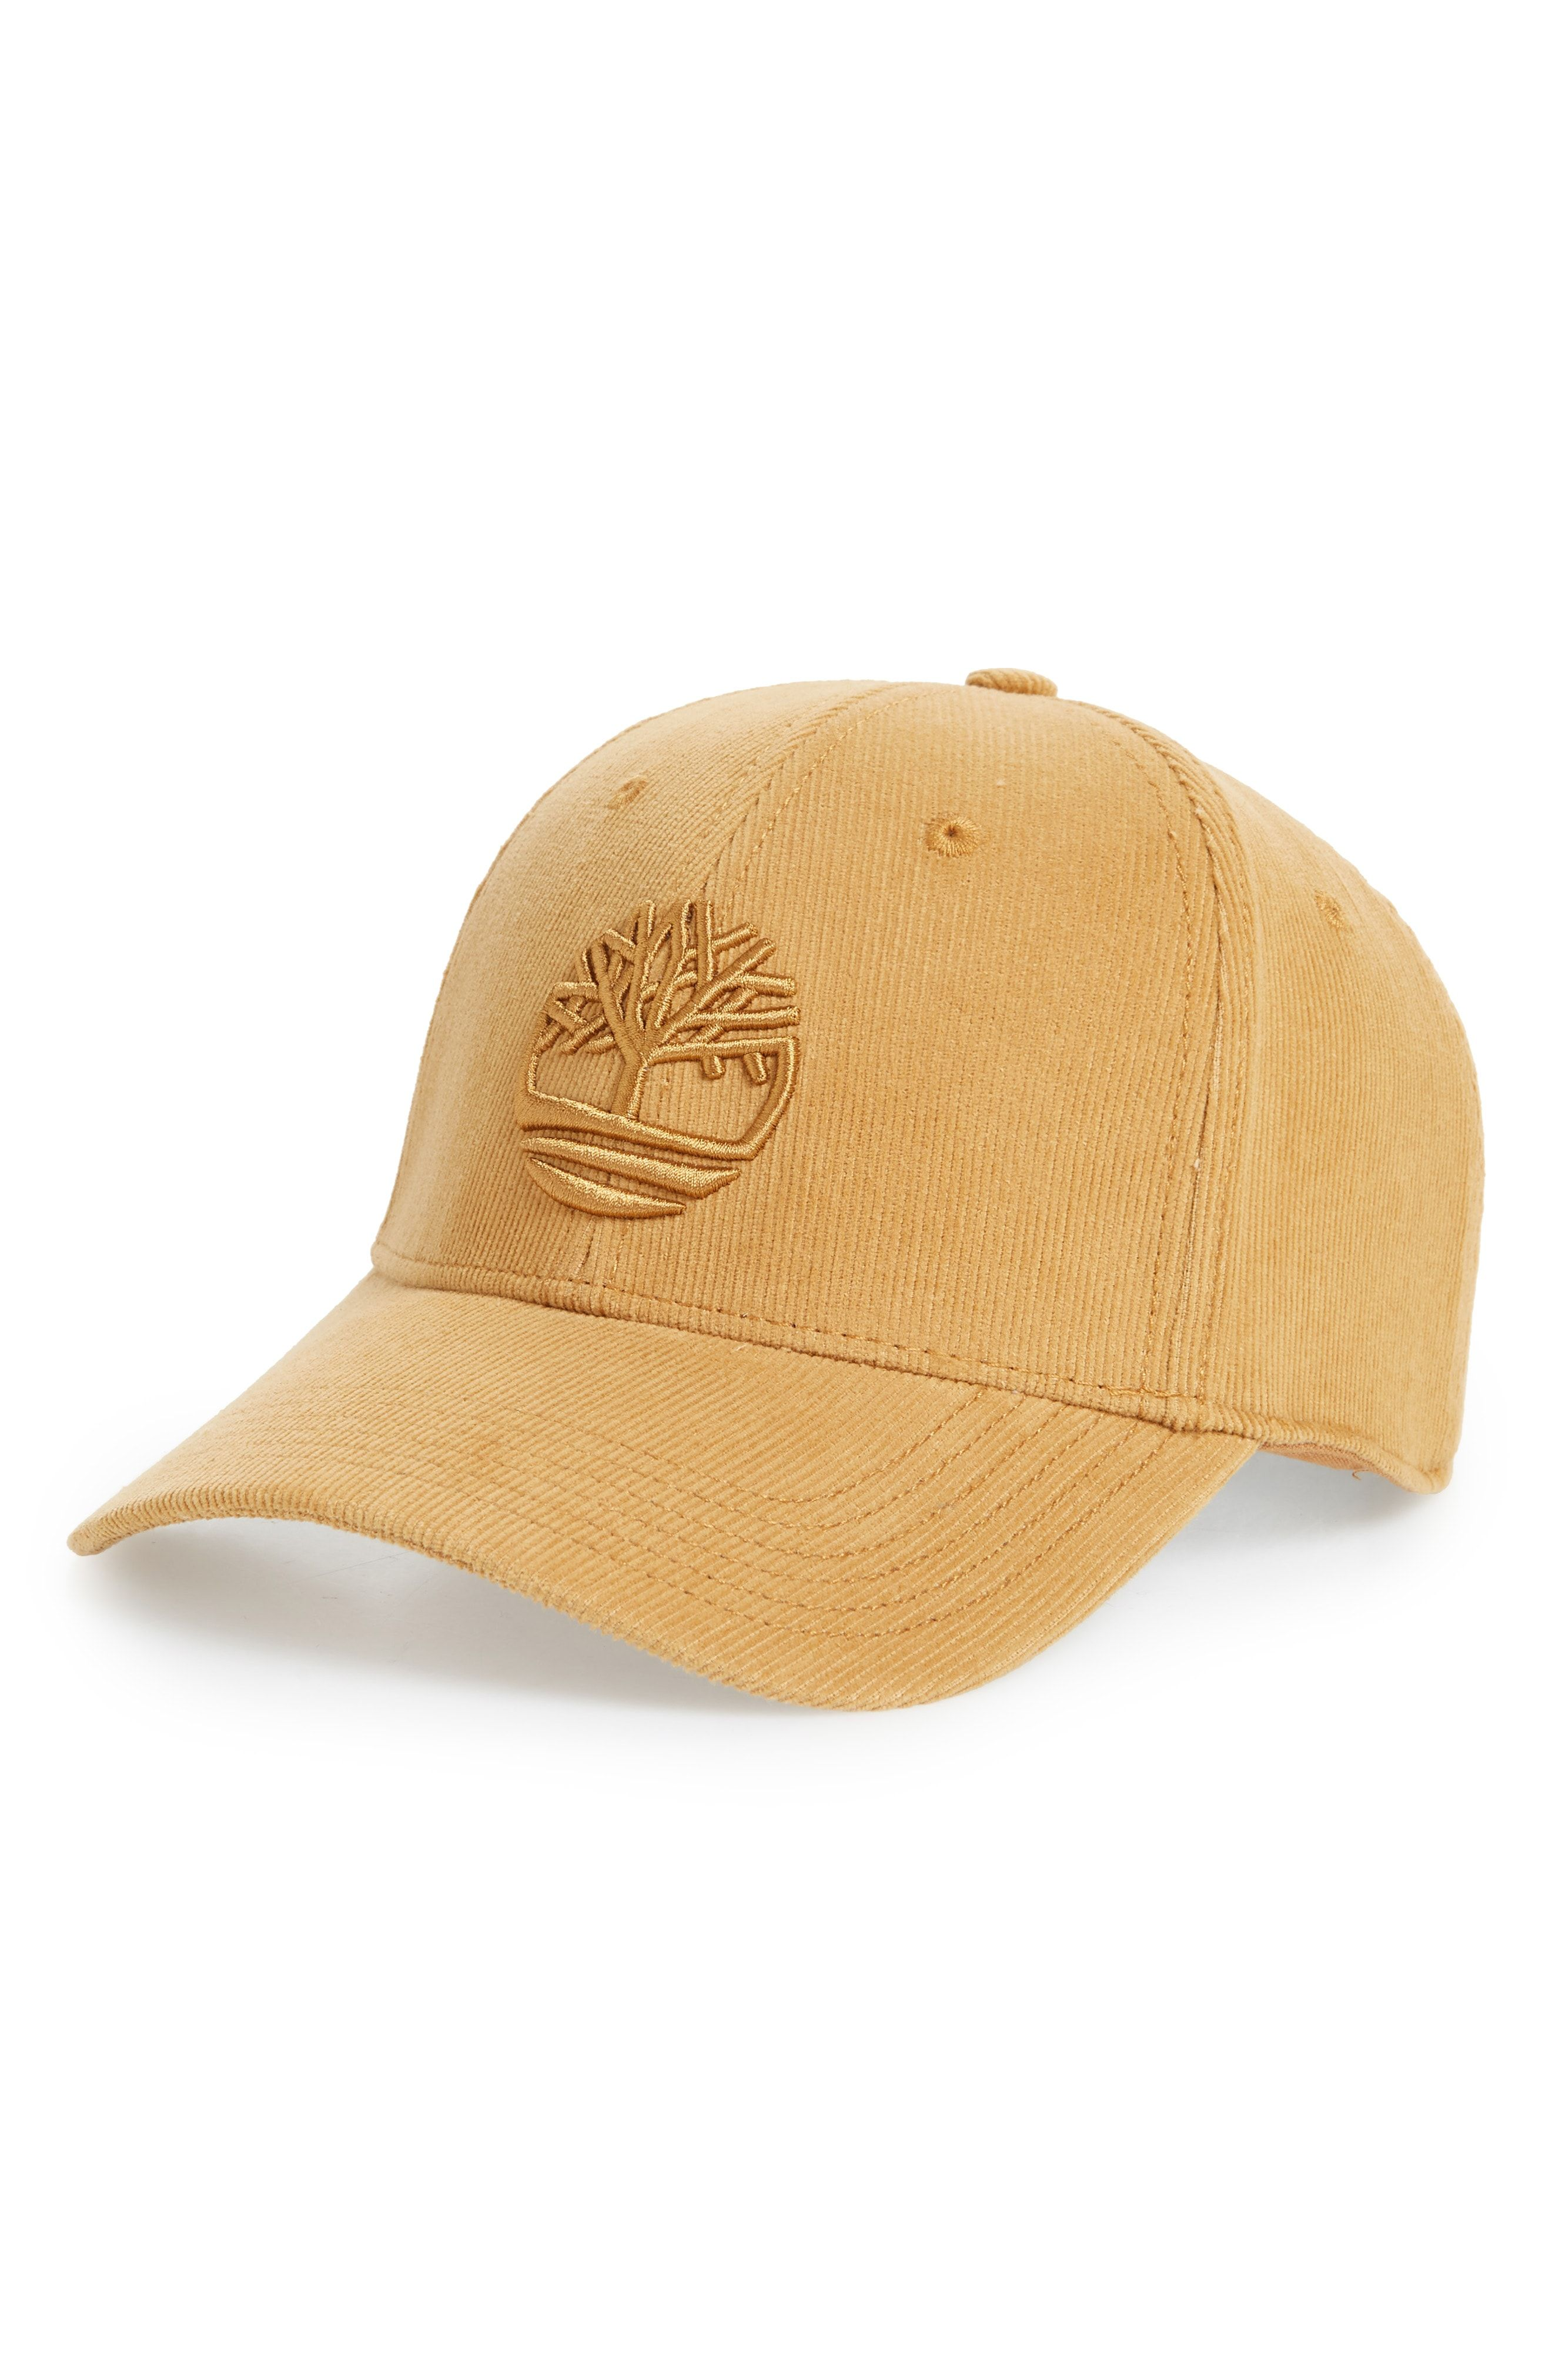 1c80ed0c2 TIMBERLAND LOGO EMBROIDERED CORDUROY BALL CAP - BROWN. #timberland ...